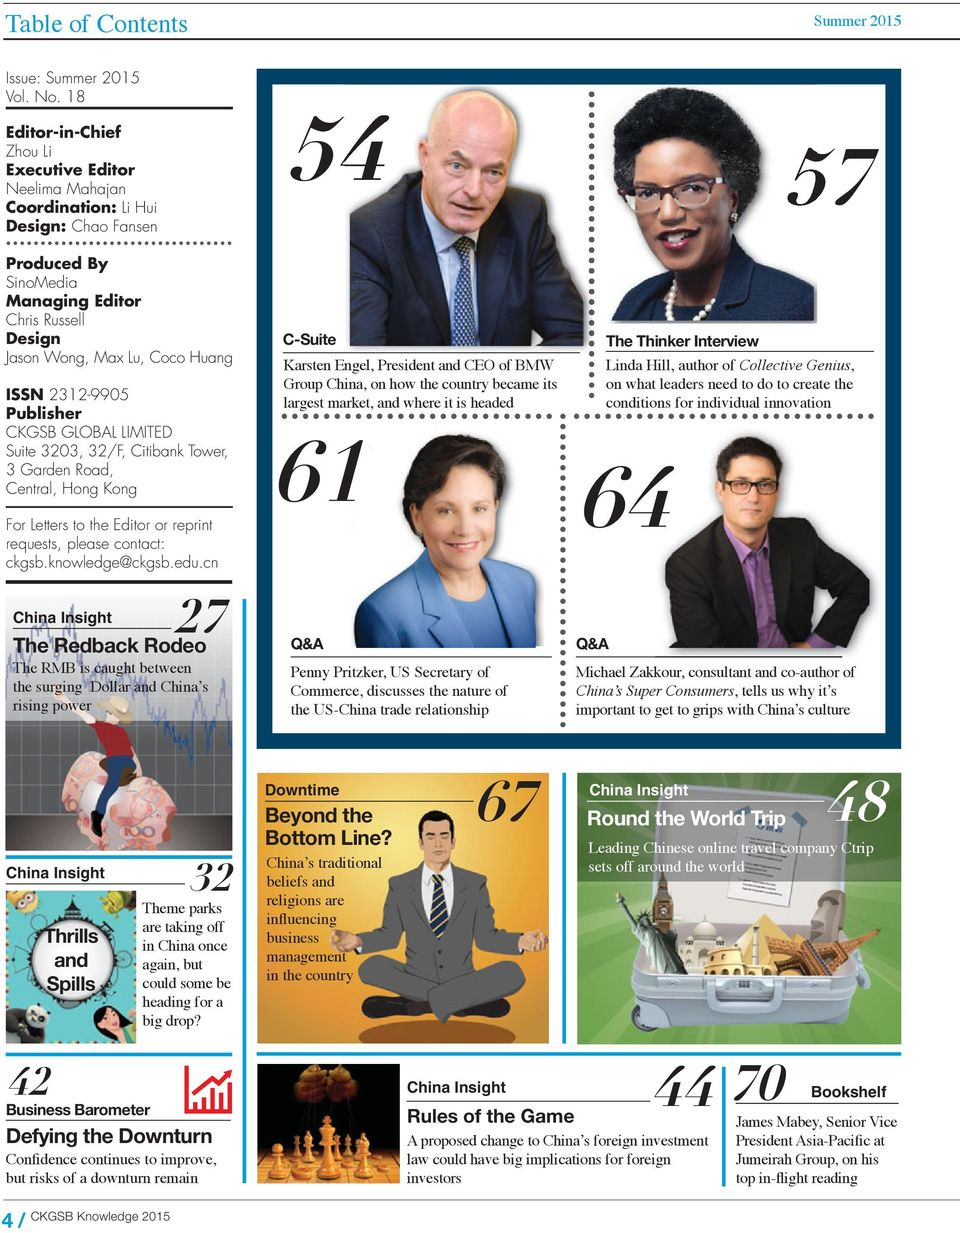 2312-9905 Publisher CKGSB GLOBAL LIMITED Suite 3203, 32/F, Citibank Tower, 3 Garden Road, Central, Hong Kong For Letters to the Editor or reprint requests, please contact: ckgsb.knowledge@ckgsb.edu.